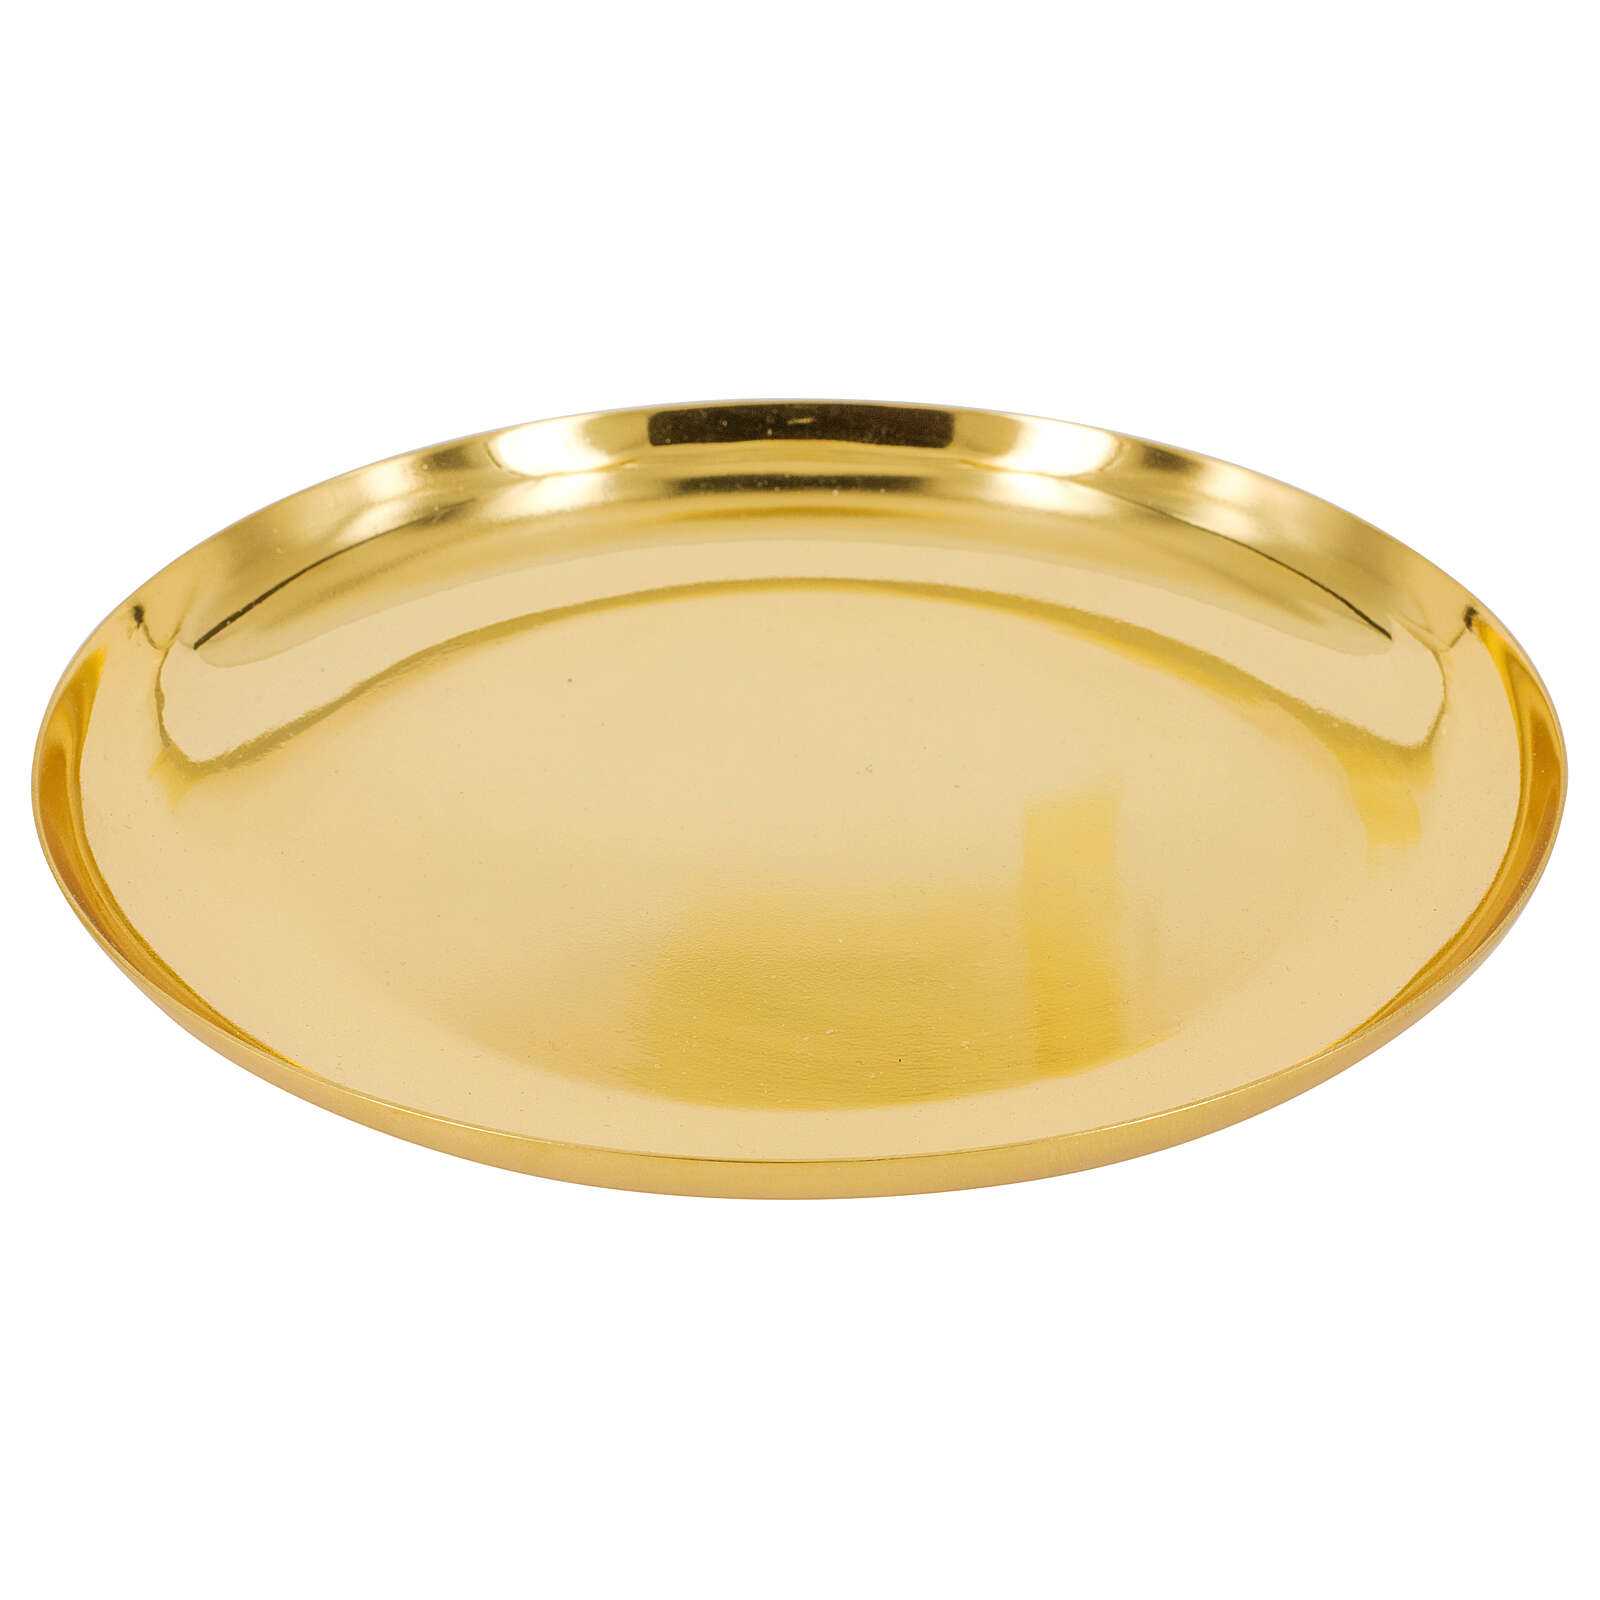 Paten with golden shiny brass finish 4